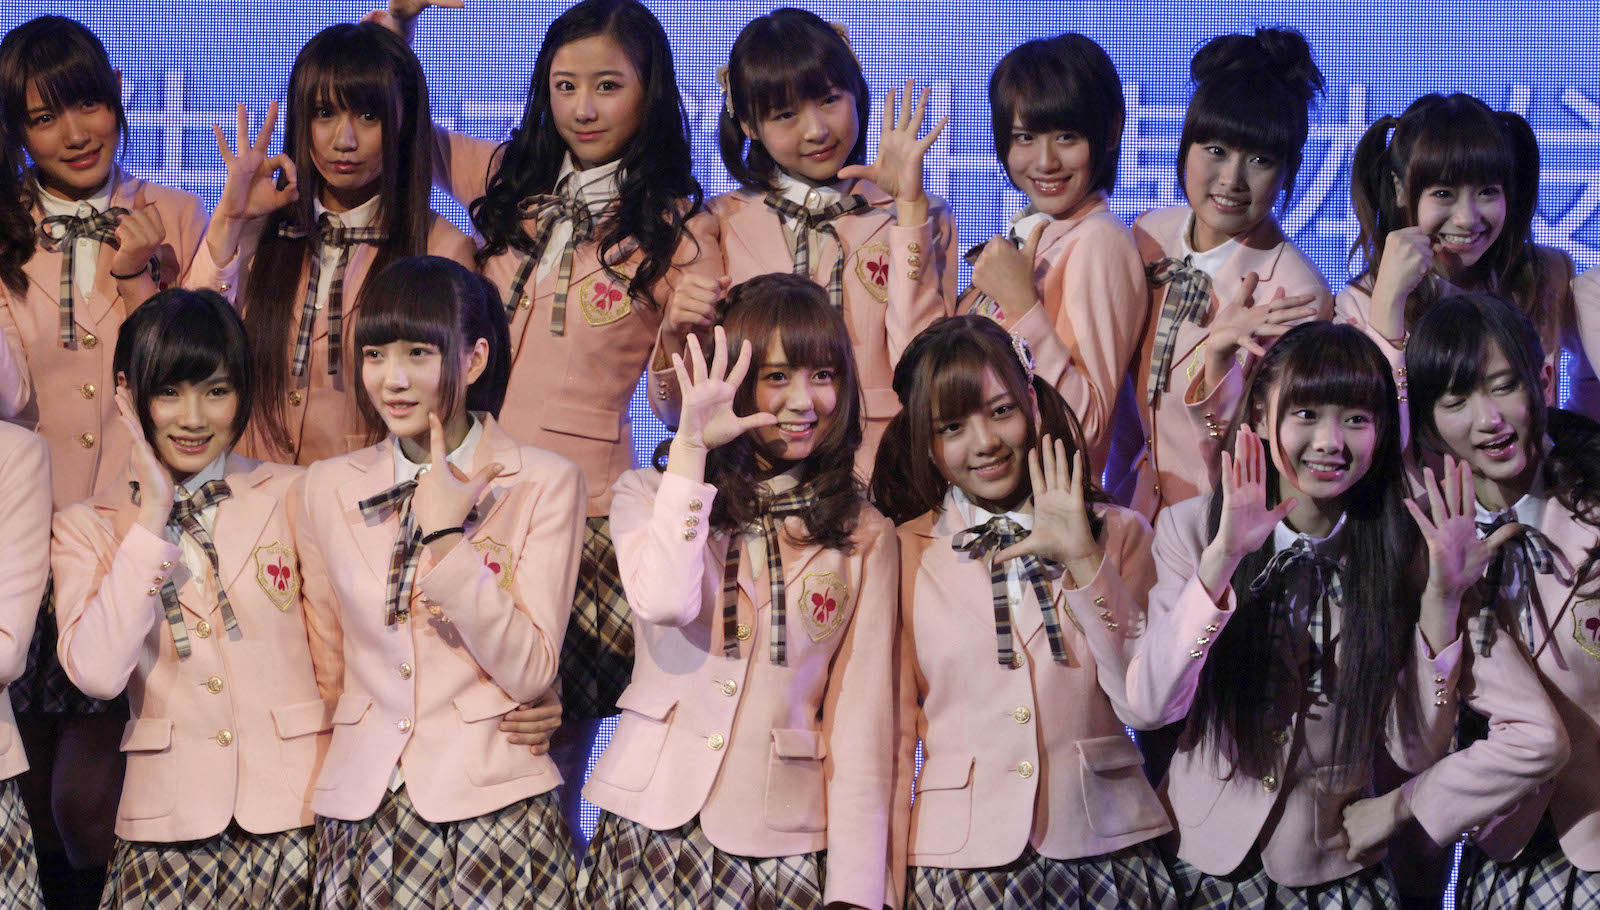 Members of SNH48, a Chinese idol group that AKB48 sister group outside of Japan, and it is based in Shanghai, pose for the photographers during the press conference before performing their first stage on Saturday Jan. 12, 2013 in Shanghai, China. (AP Photo/Eugene Hoshiko)